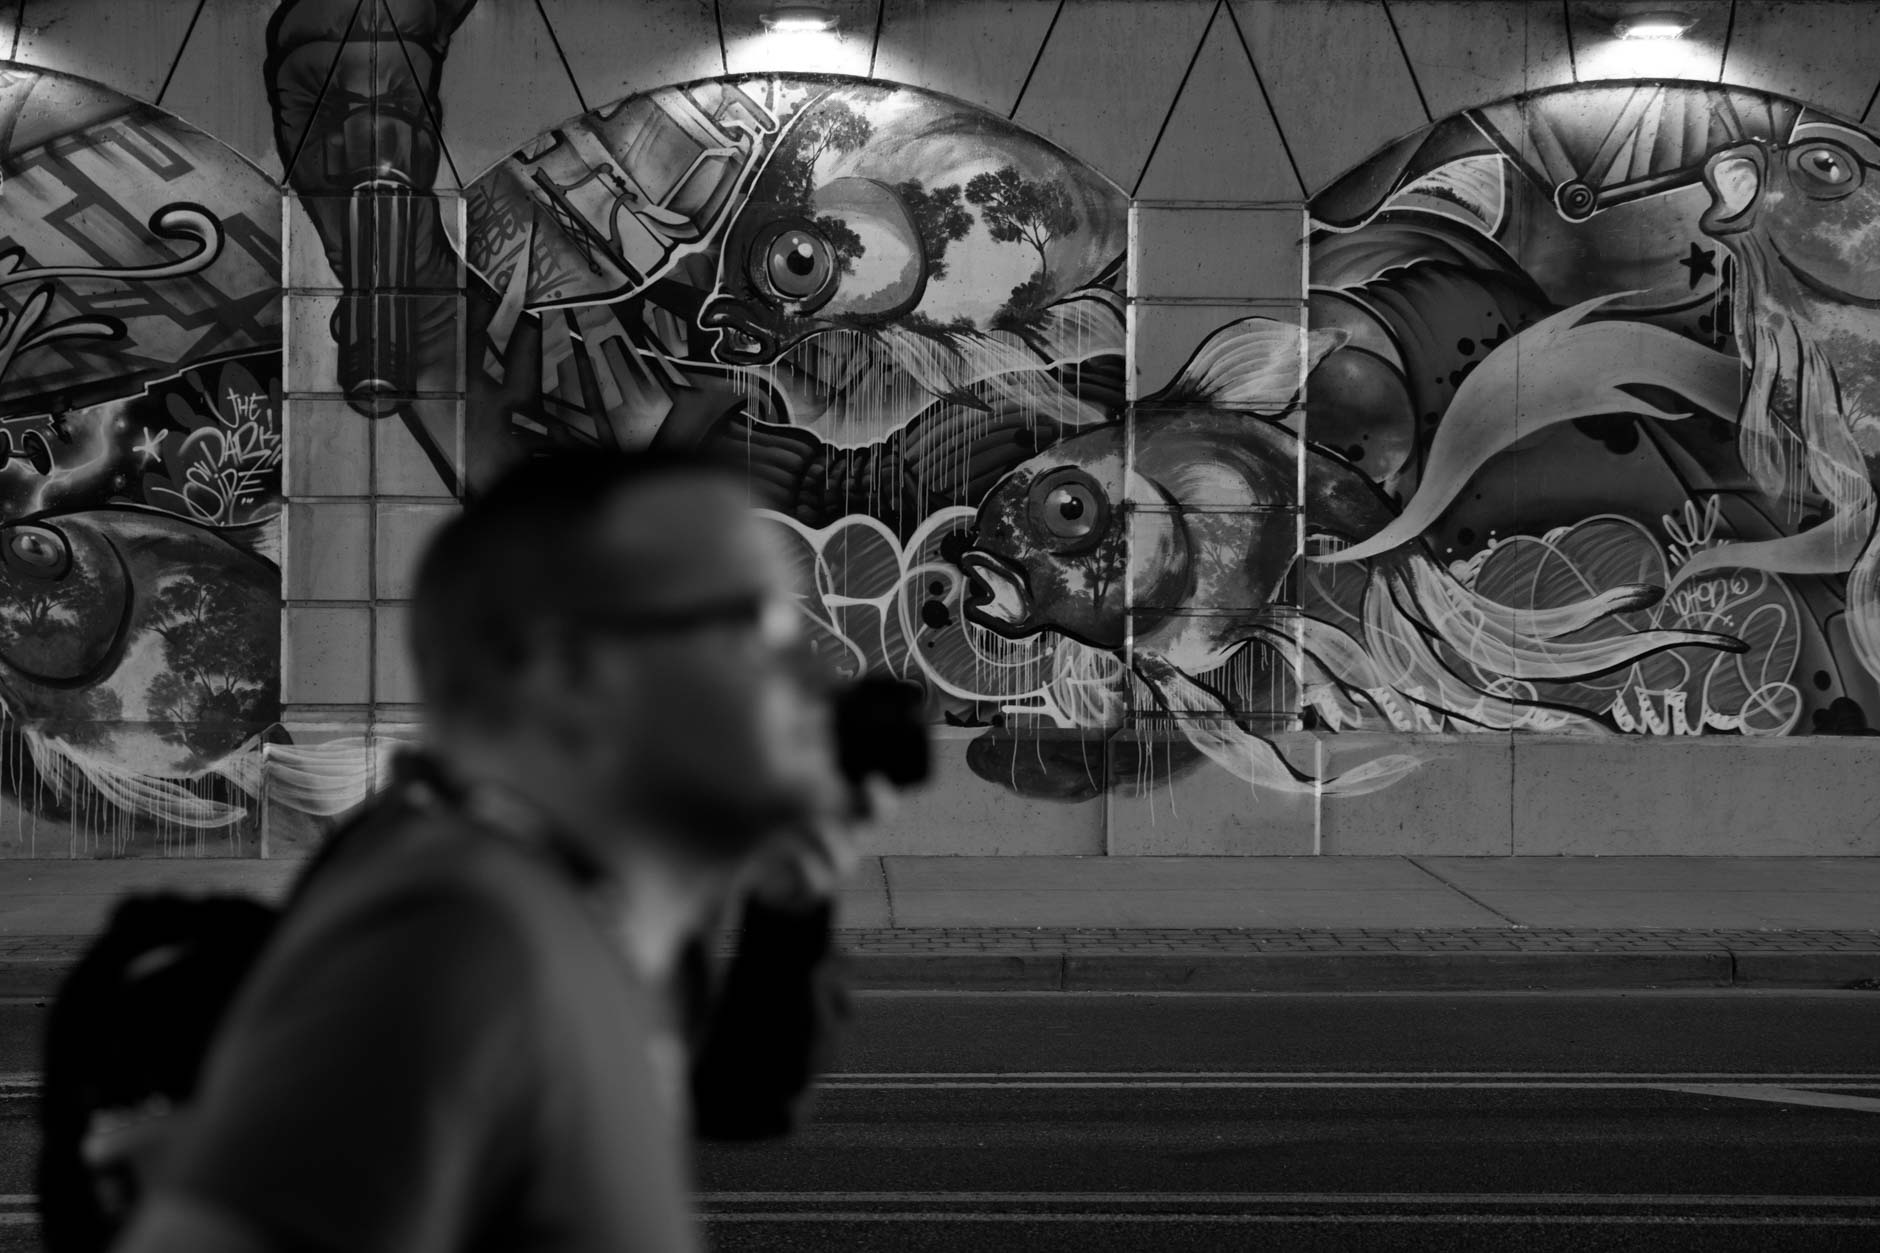 Symposium participants walk past a mural under an Interstate overpass during the 2019 University Photographers' Association of America Symposium in Grand Rapids, Michigan on Tuesday, June 18, 2019.